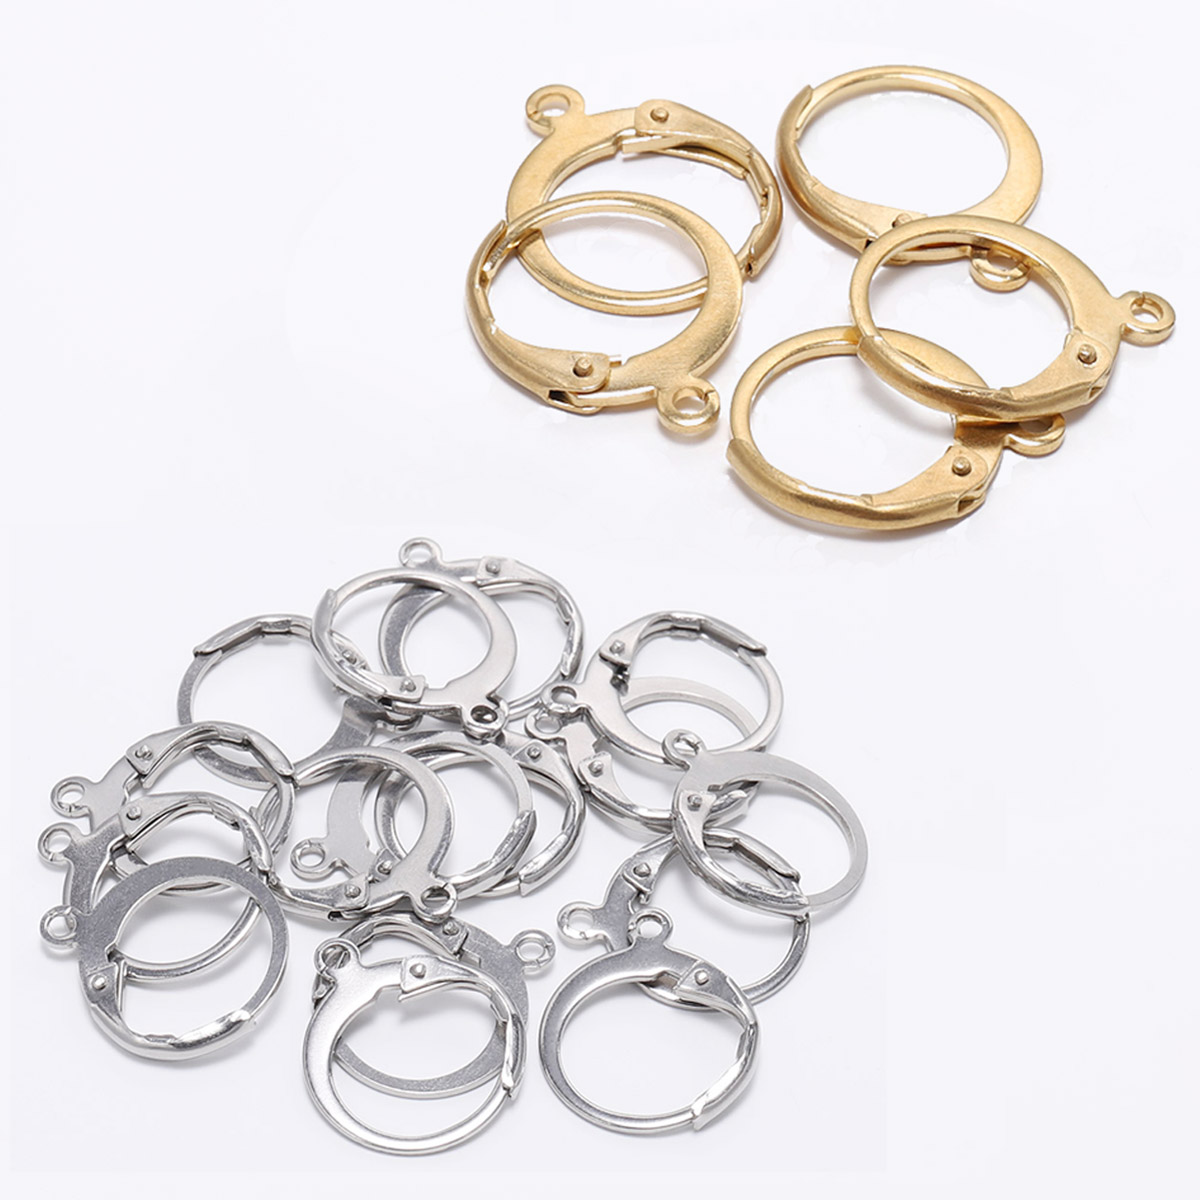 20pcs/lot Gold Stainless Steel French Lever Earring Hooks Wire Settings Base Hoops Earrings For DIY Jewelry Making Supplies